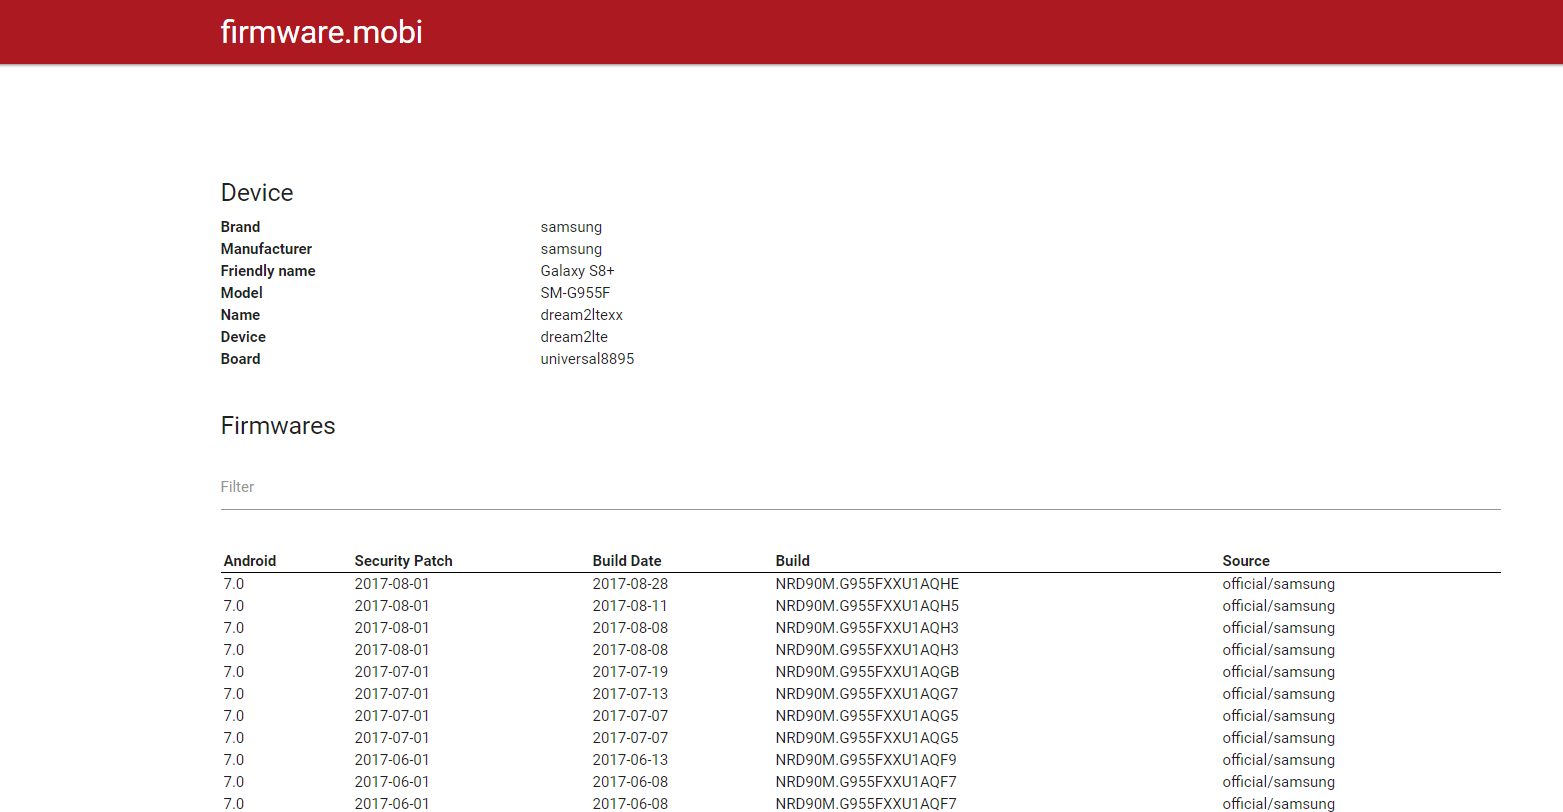 firmware.mobi root chainfire